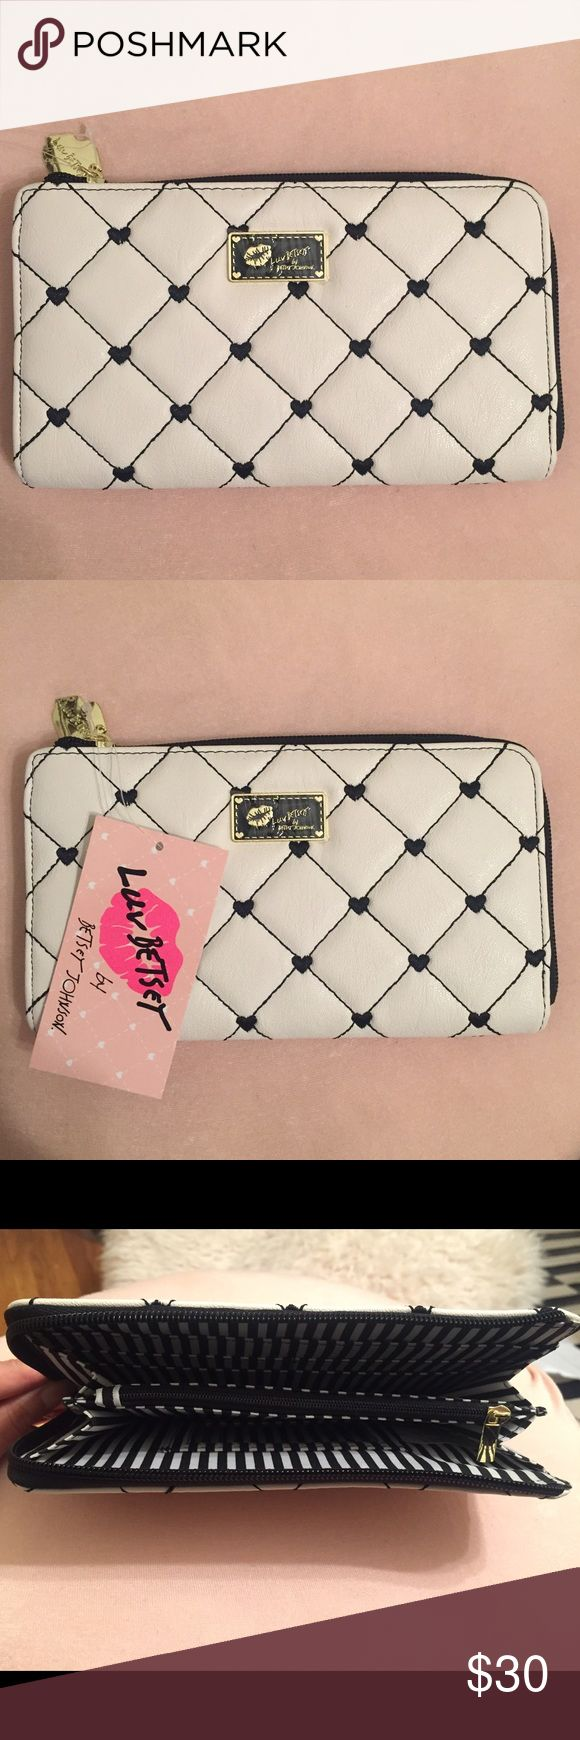 Luv Betsey by Betsey Johnson Wallet 💕 Cute Luv Betsey by Betsey Johnson Quilted Wallet - white with black details and hearts 🖤 Betsey Johnson Bags Wallets